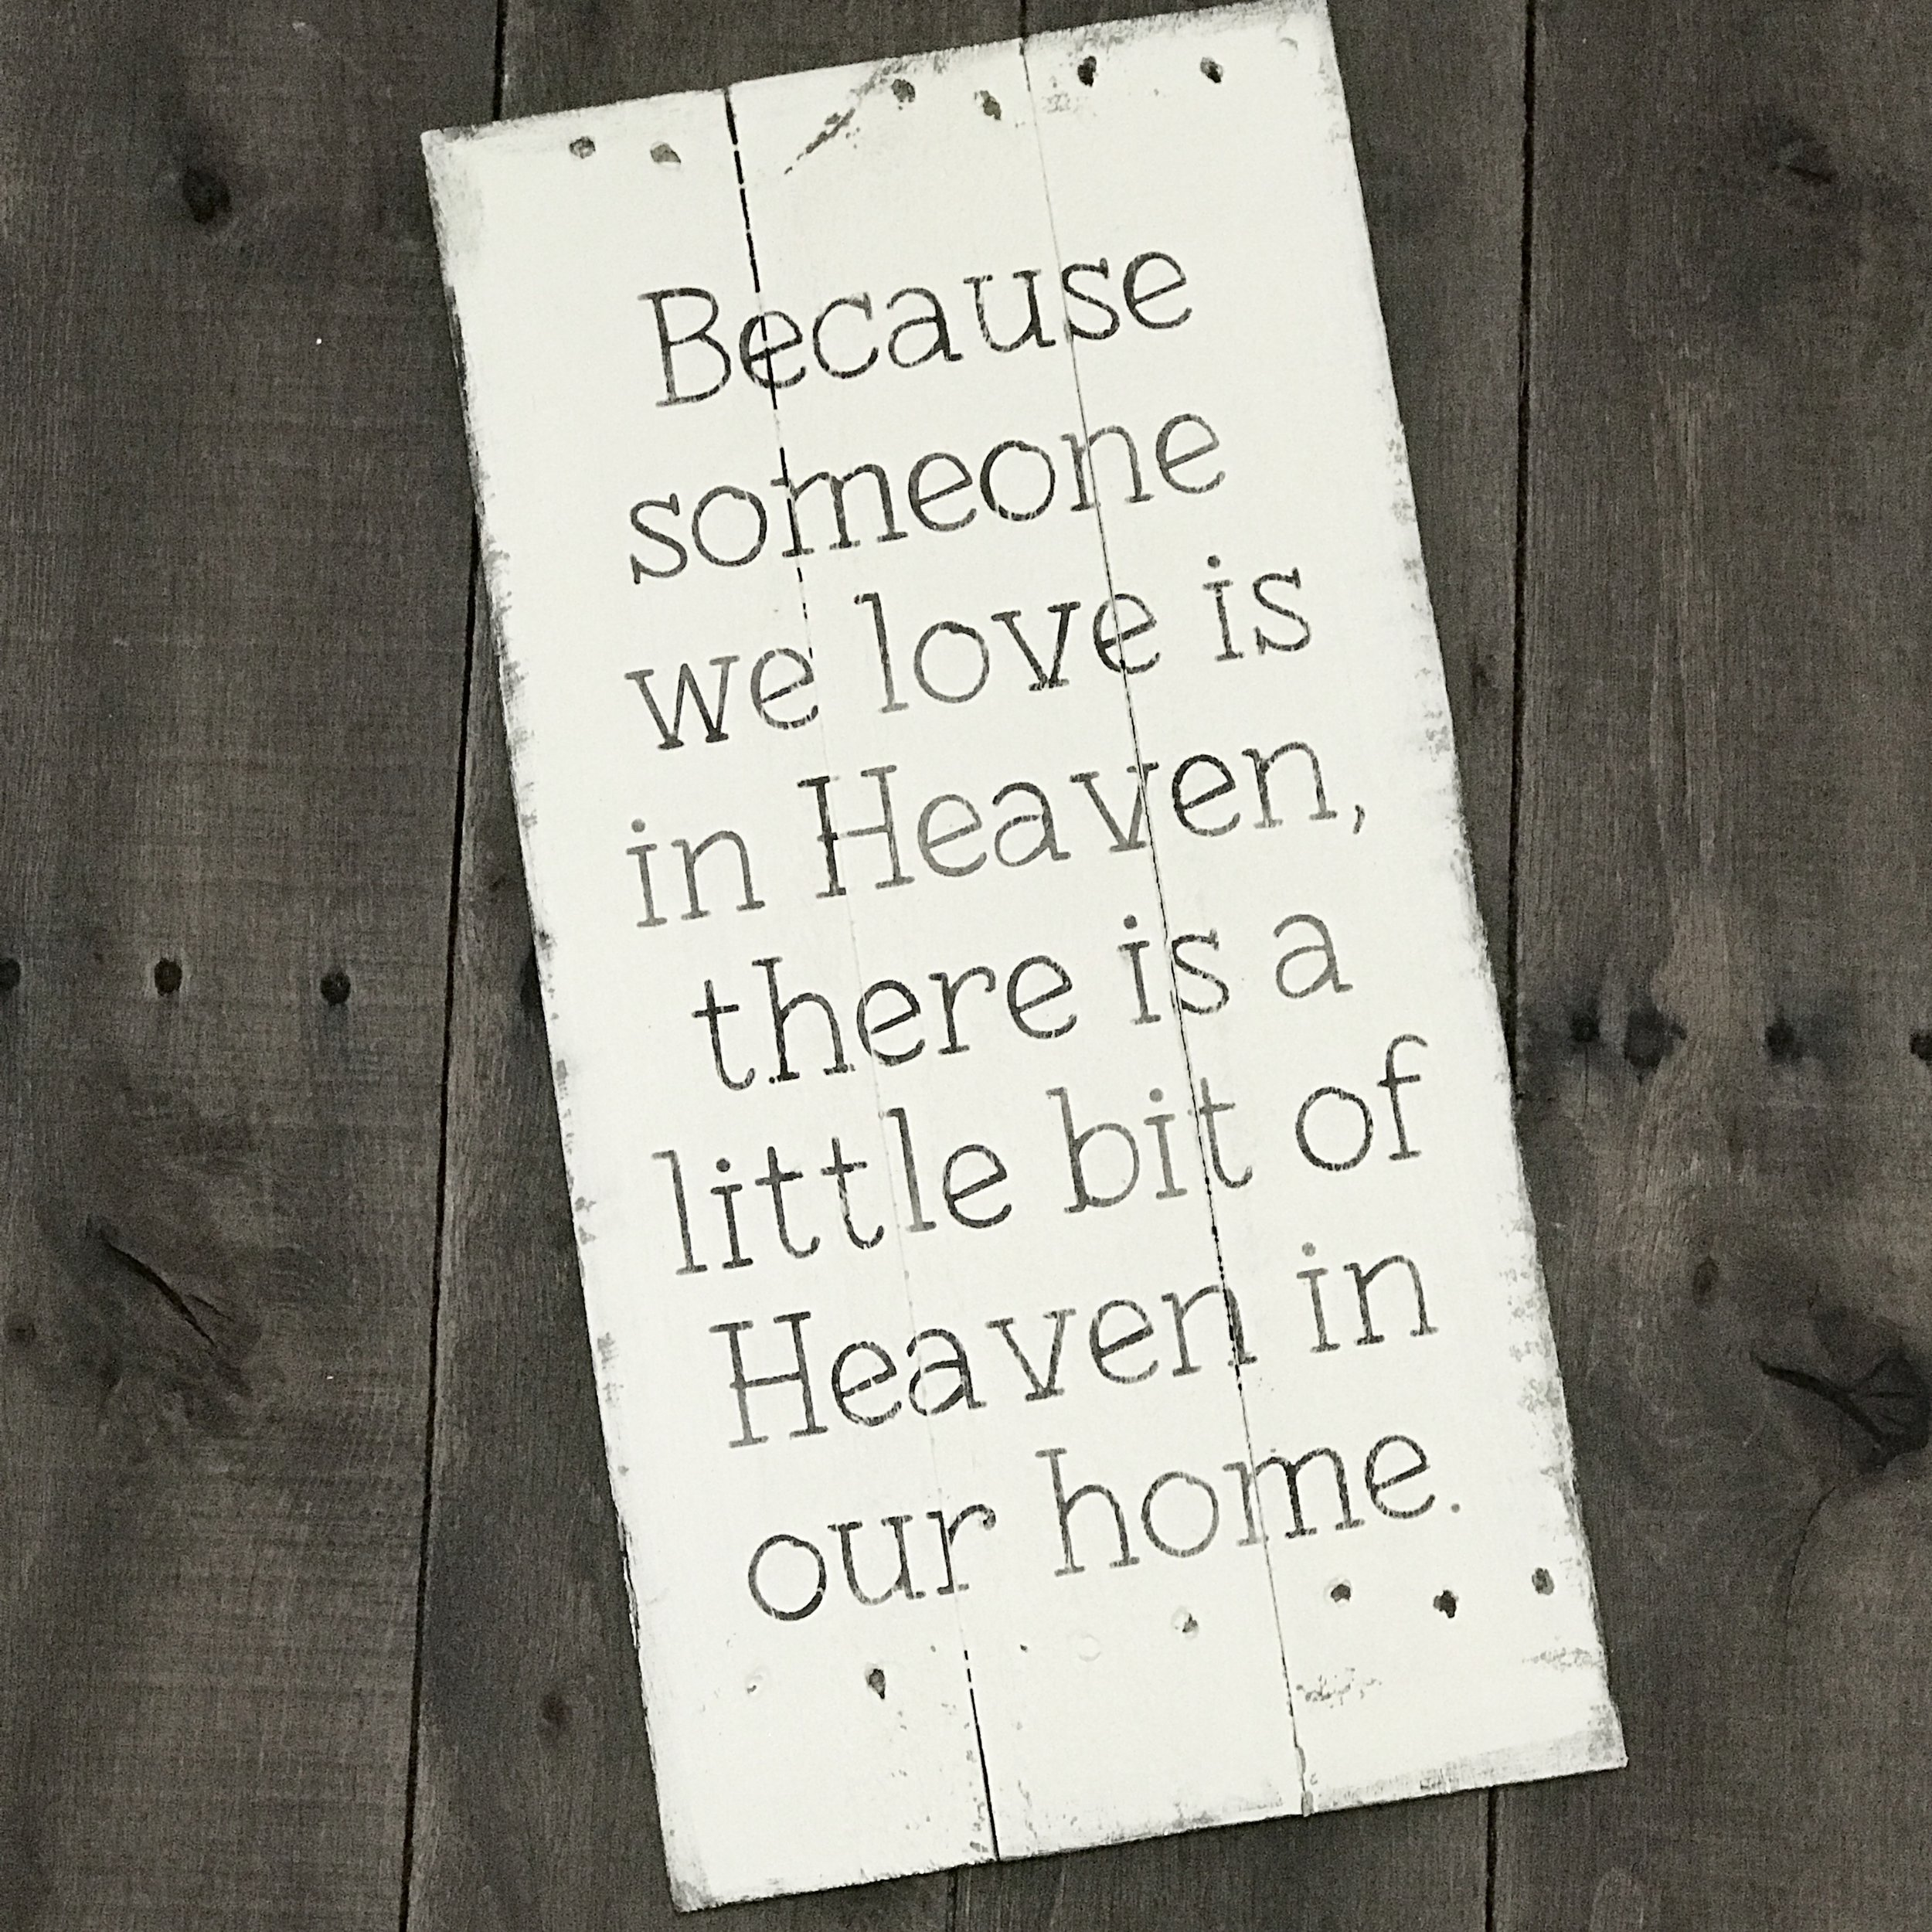 Because someone we love is in heaven- Farmhouse sign on Reclaimed Wood, inspirational sign, heaven sign, sympathy gift, inspirational gift